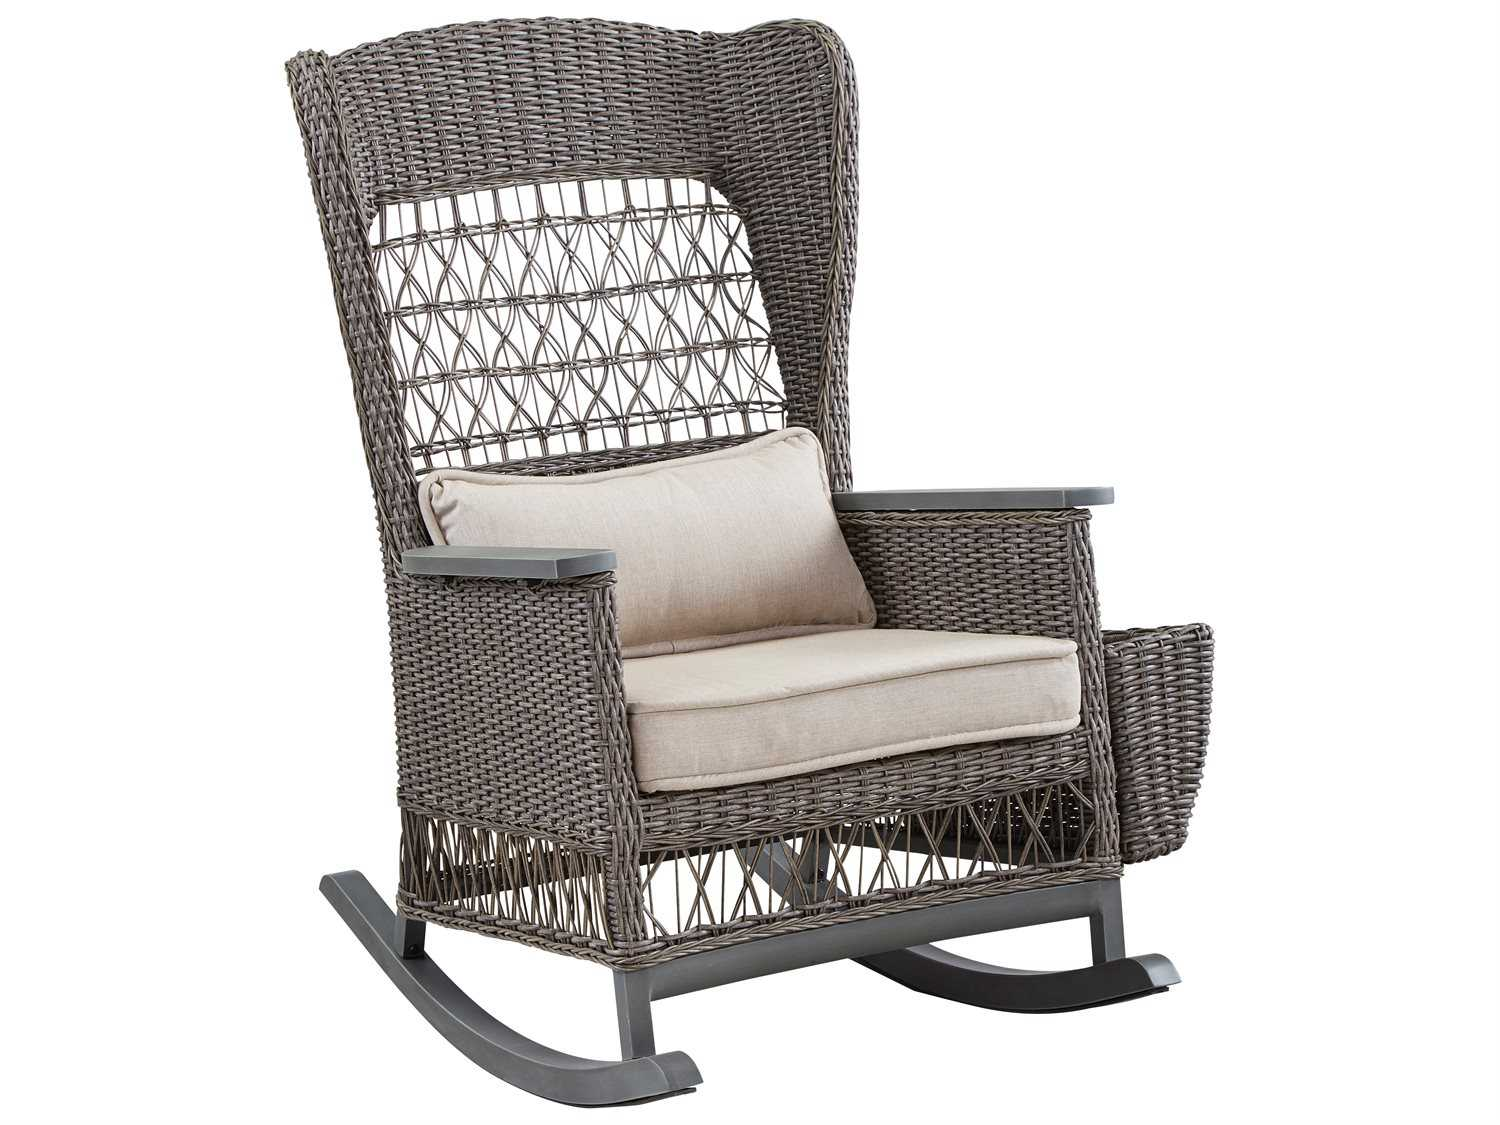 Outdoor Wicker Swivel Chair | Indoor Glider Chair | Rattan Swivel Rocker